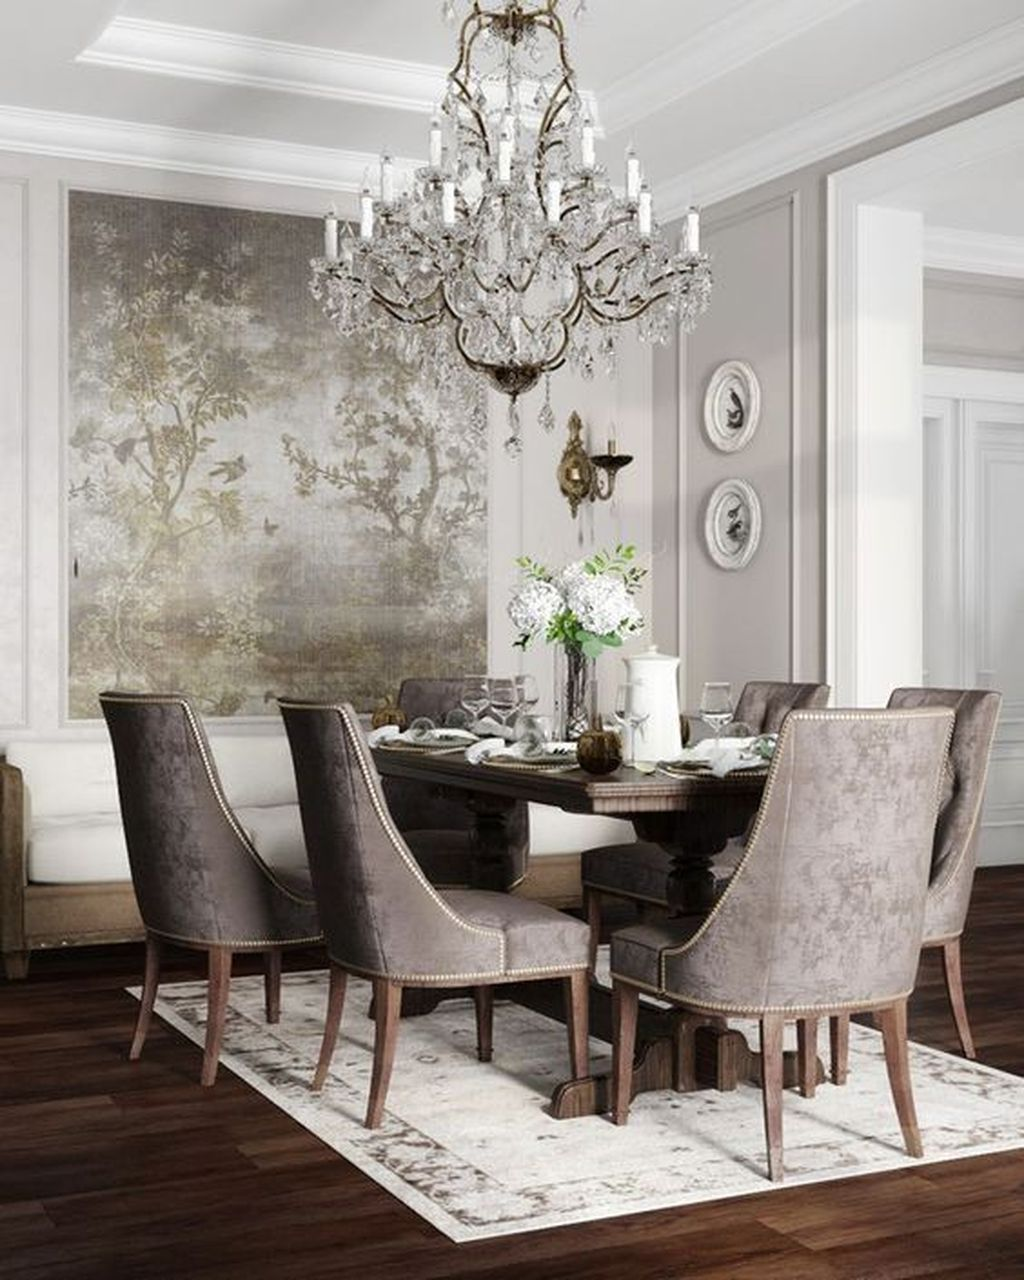 32 Inspiring Dining Chairs For Your Beautiful Dining Room In 2020